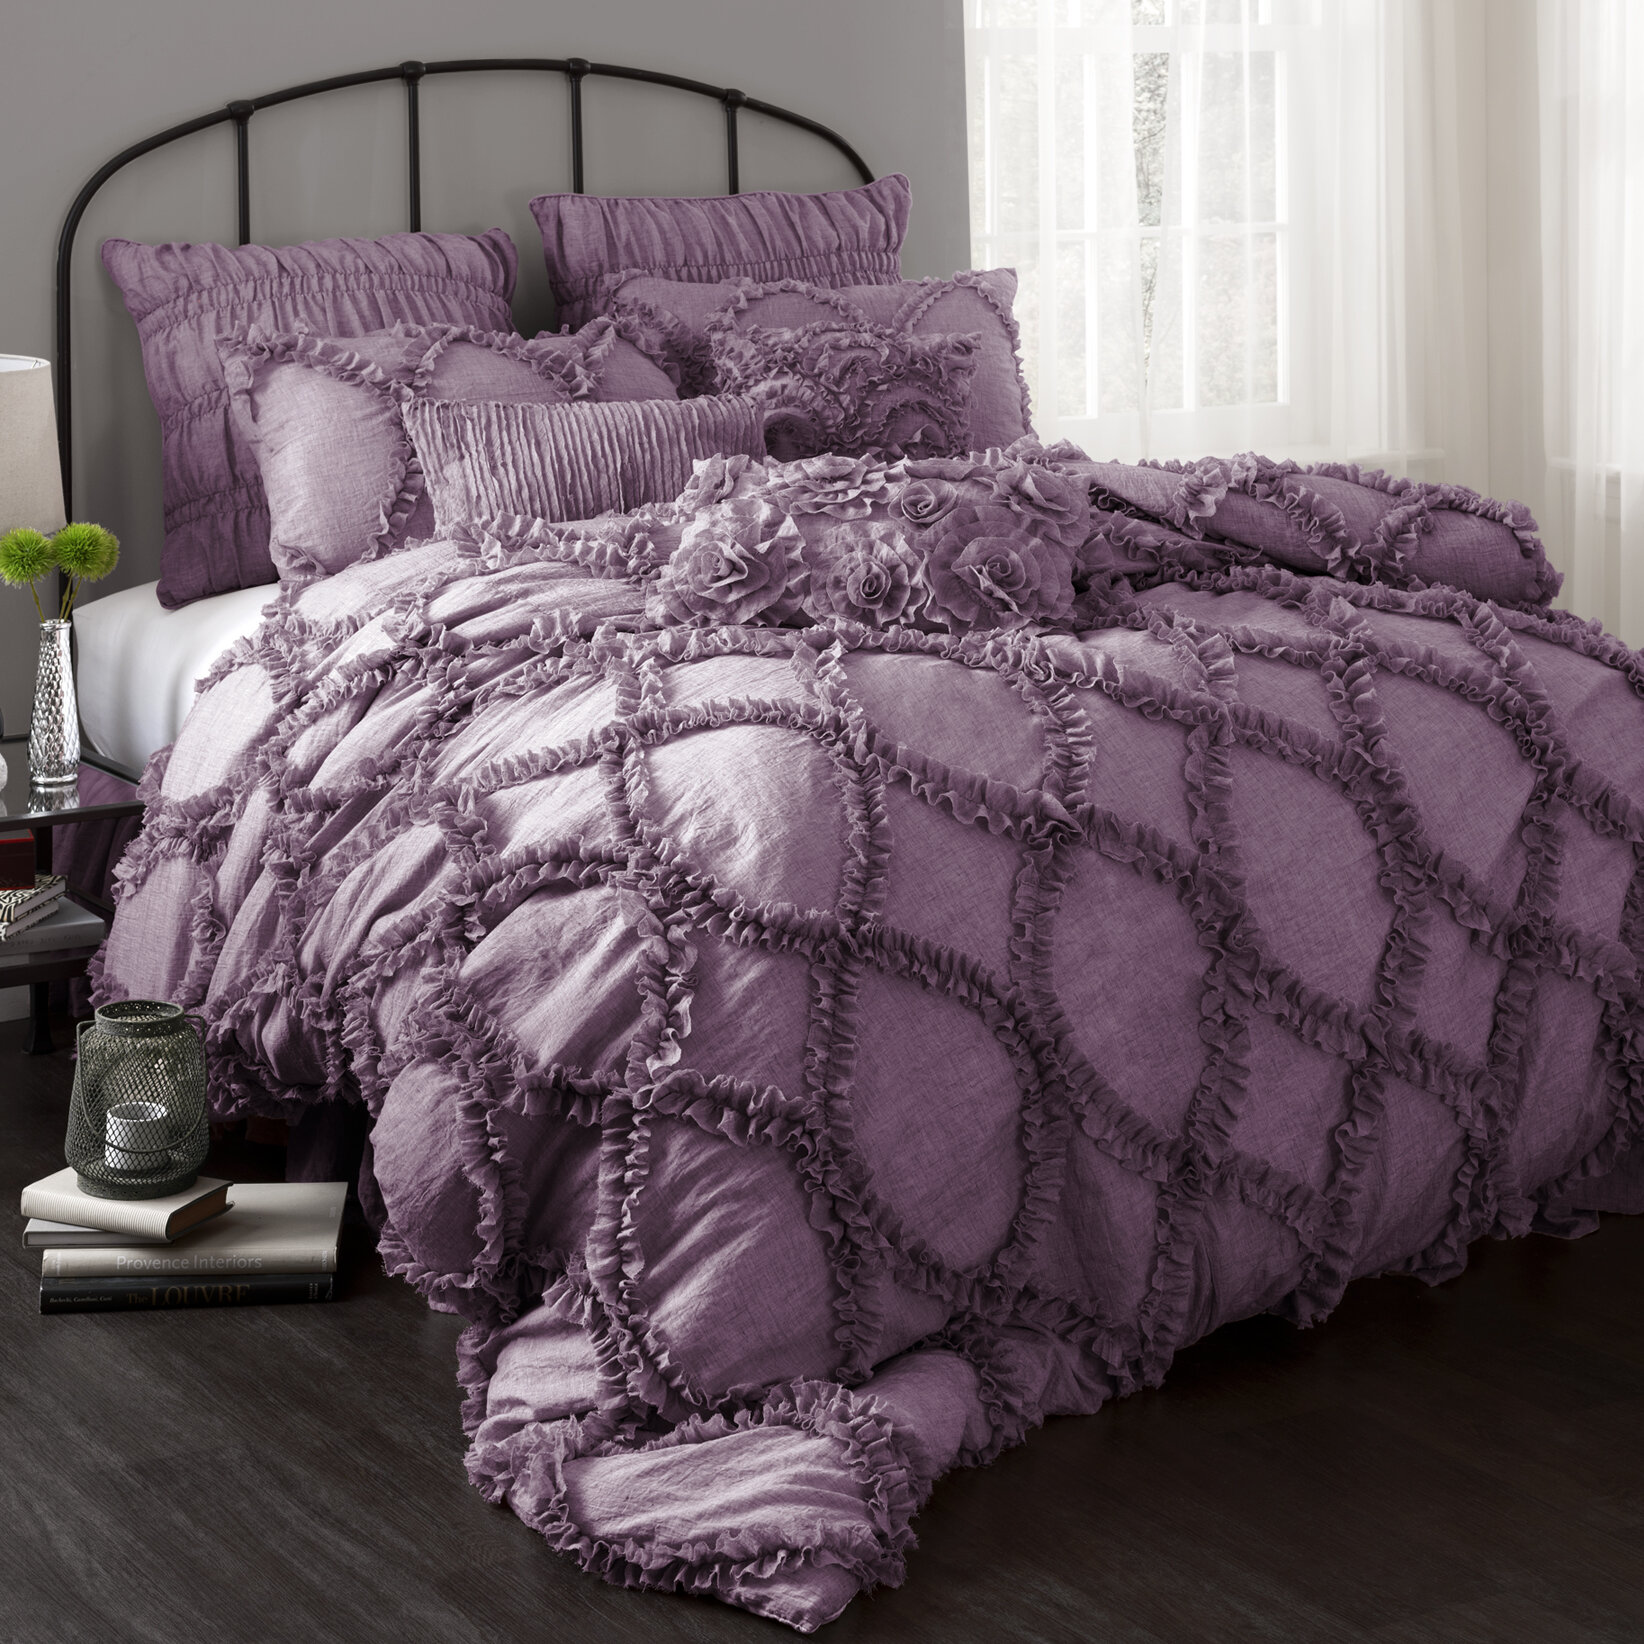 Purple comforter sets purple bedroom ideas for Bedroom decor sets